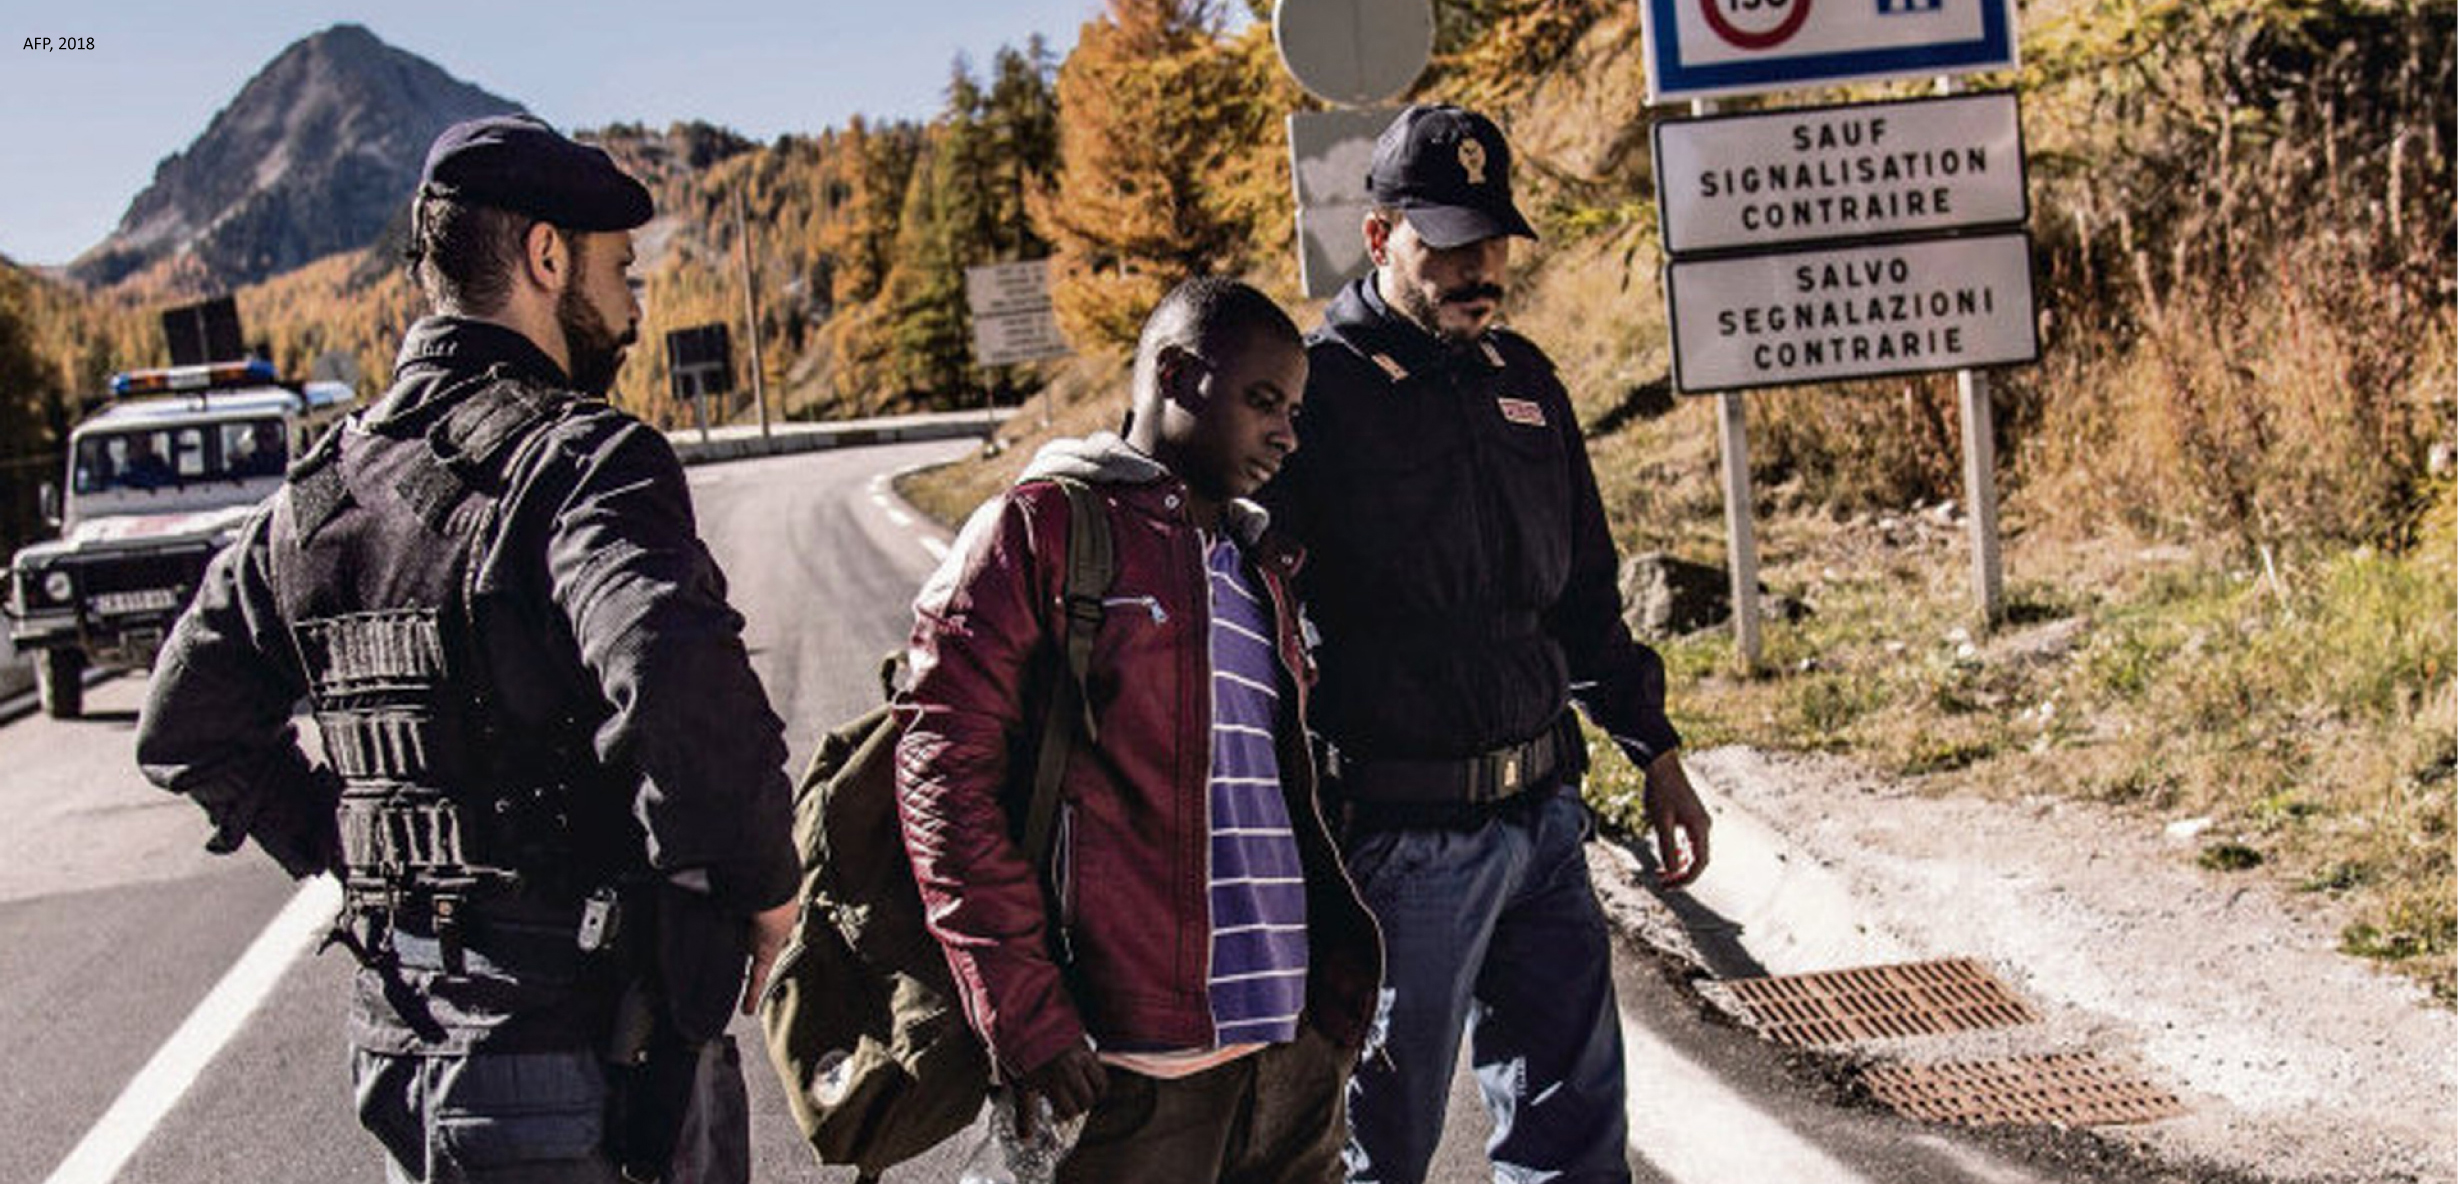 Falling under the non-admission procedure, this refugee caught by the French police near the border has just been handed over to the Italian police.